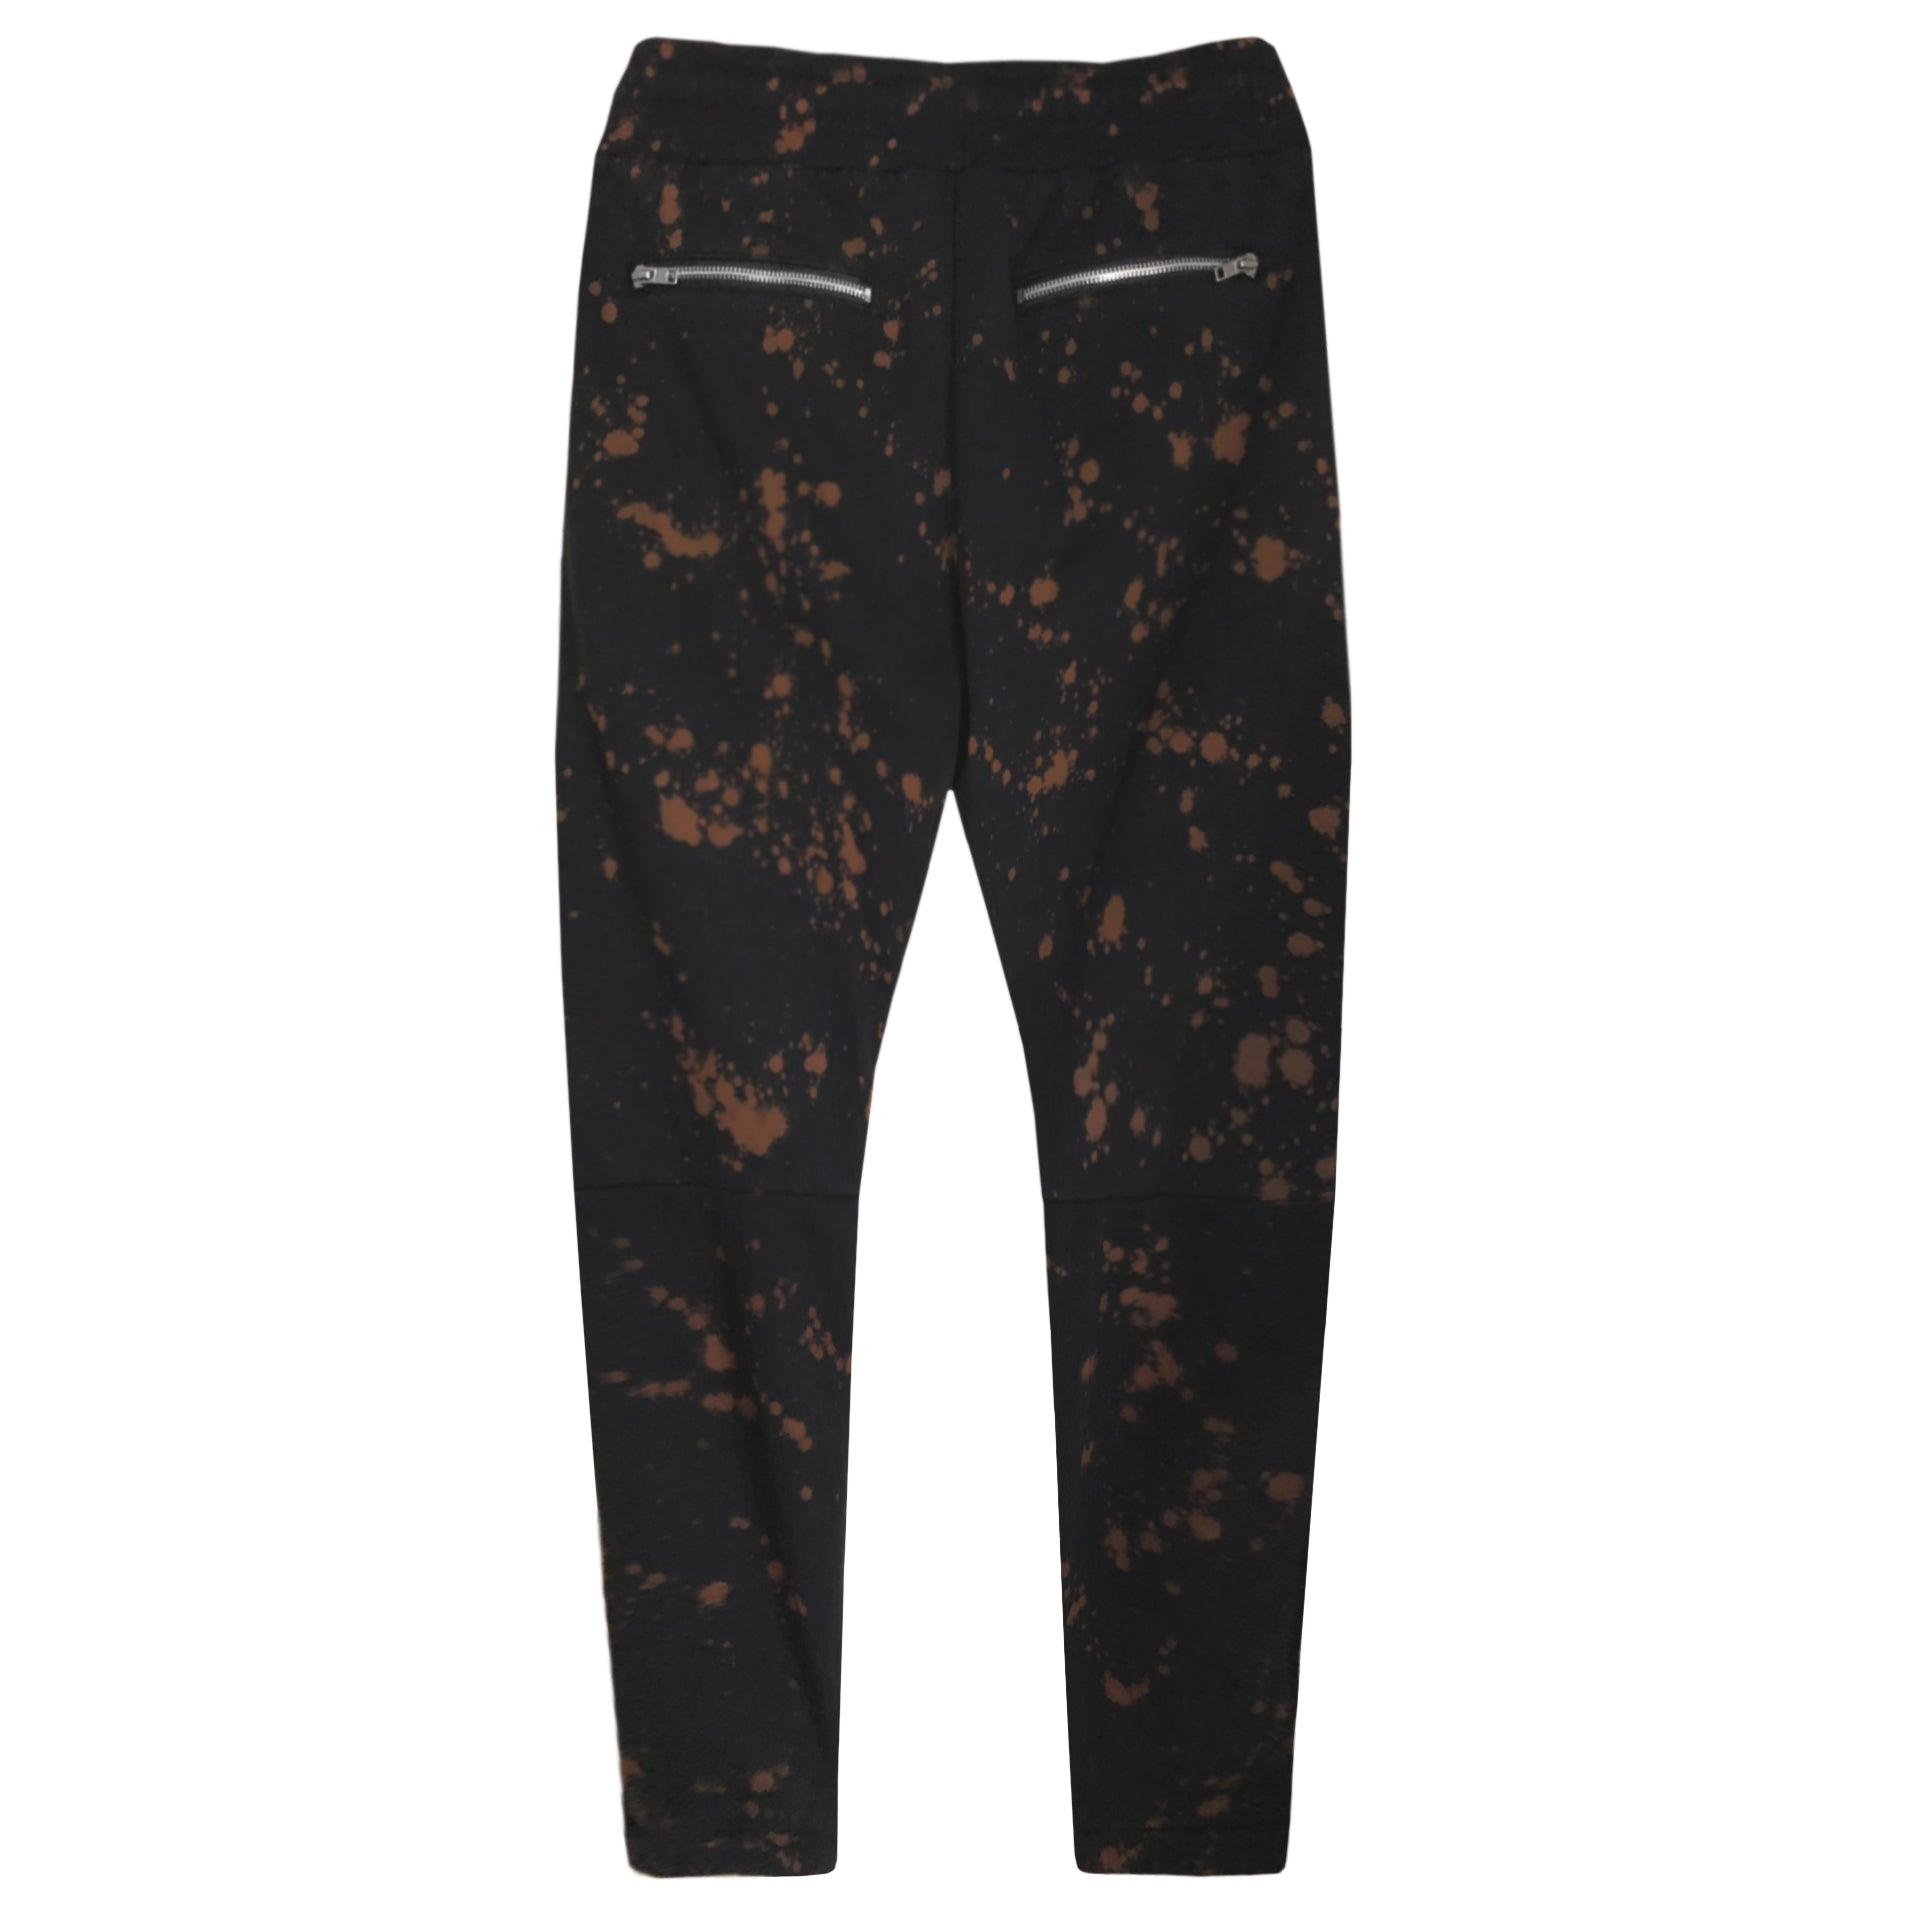 Splatter Trackpants : Black